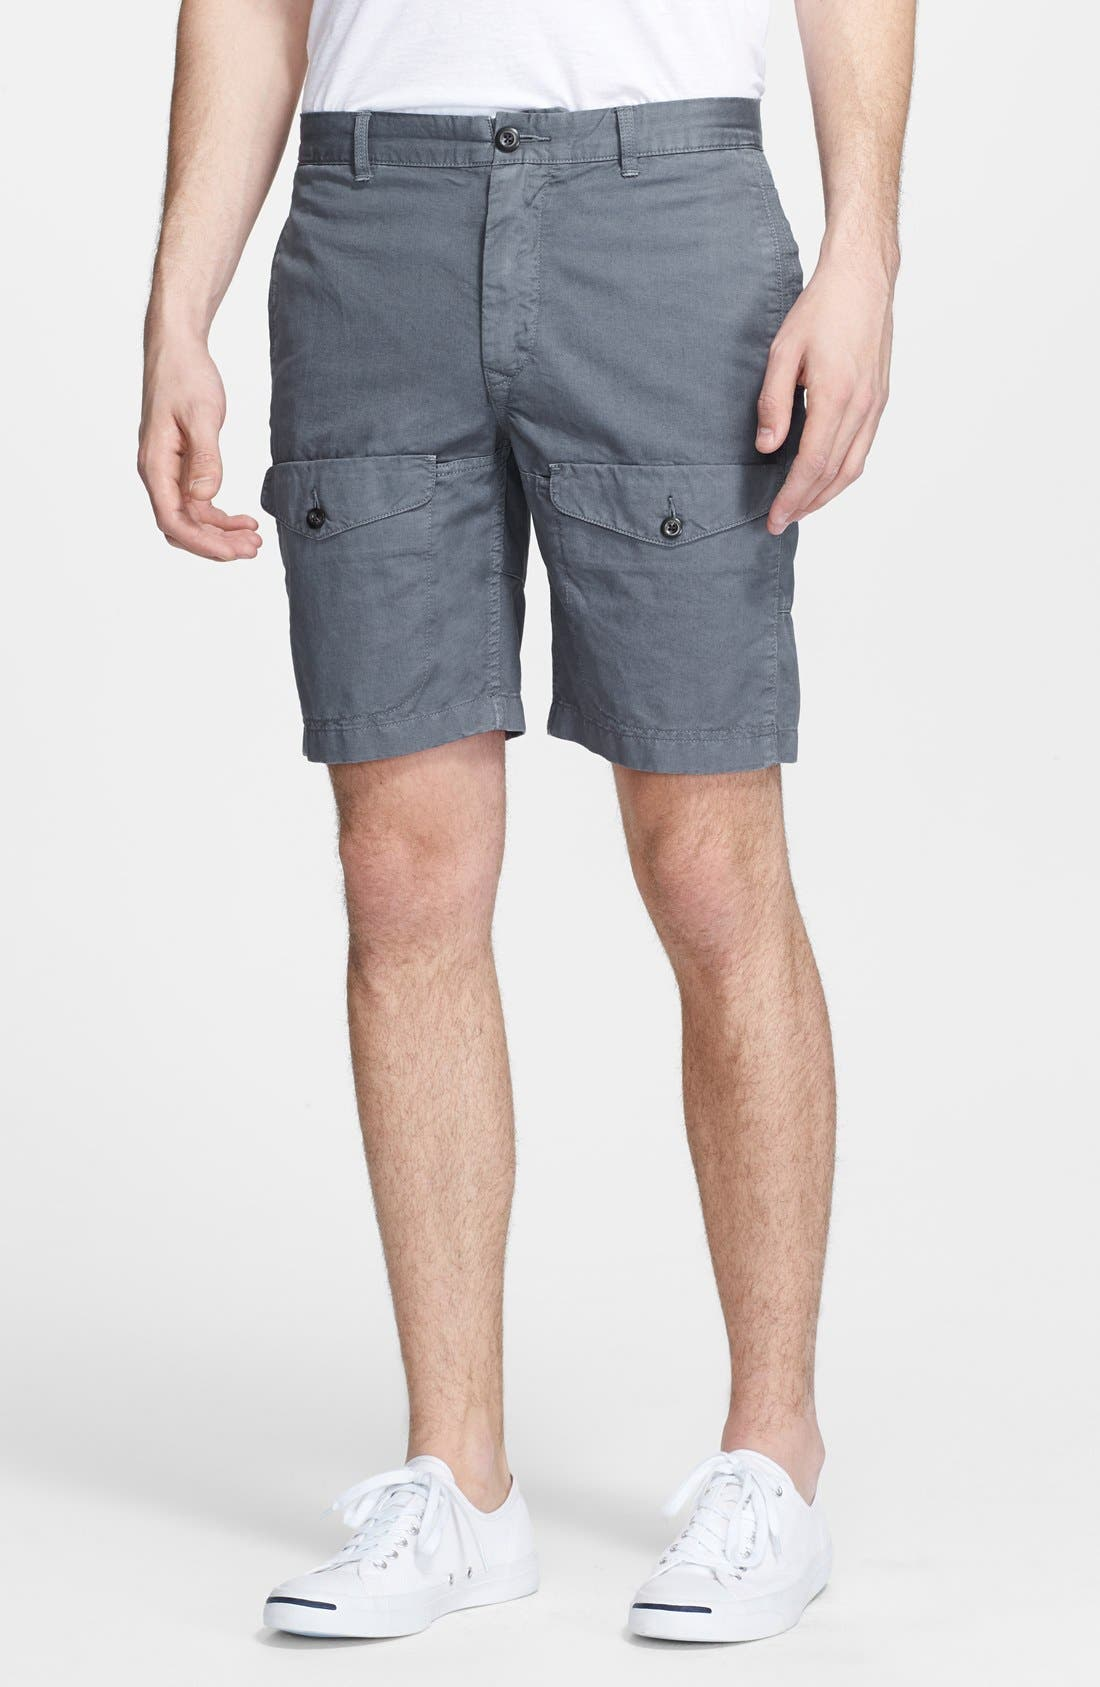 Alternate Image 1 Selected - Jack Spade 'Trenton' Utility Shorts